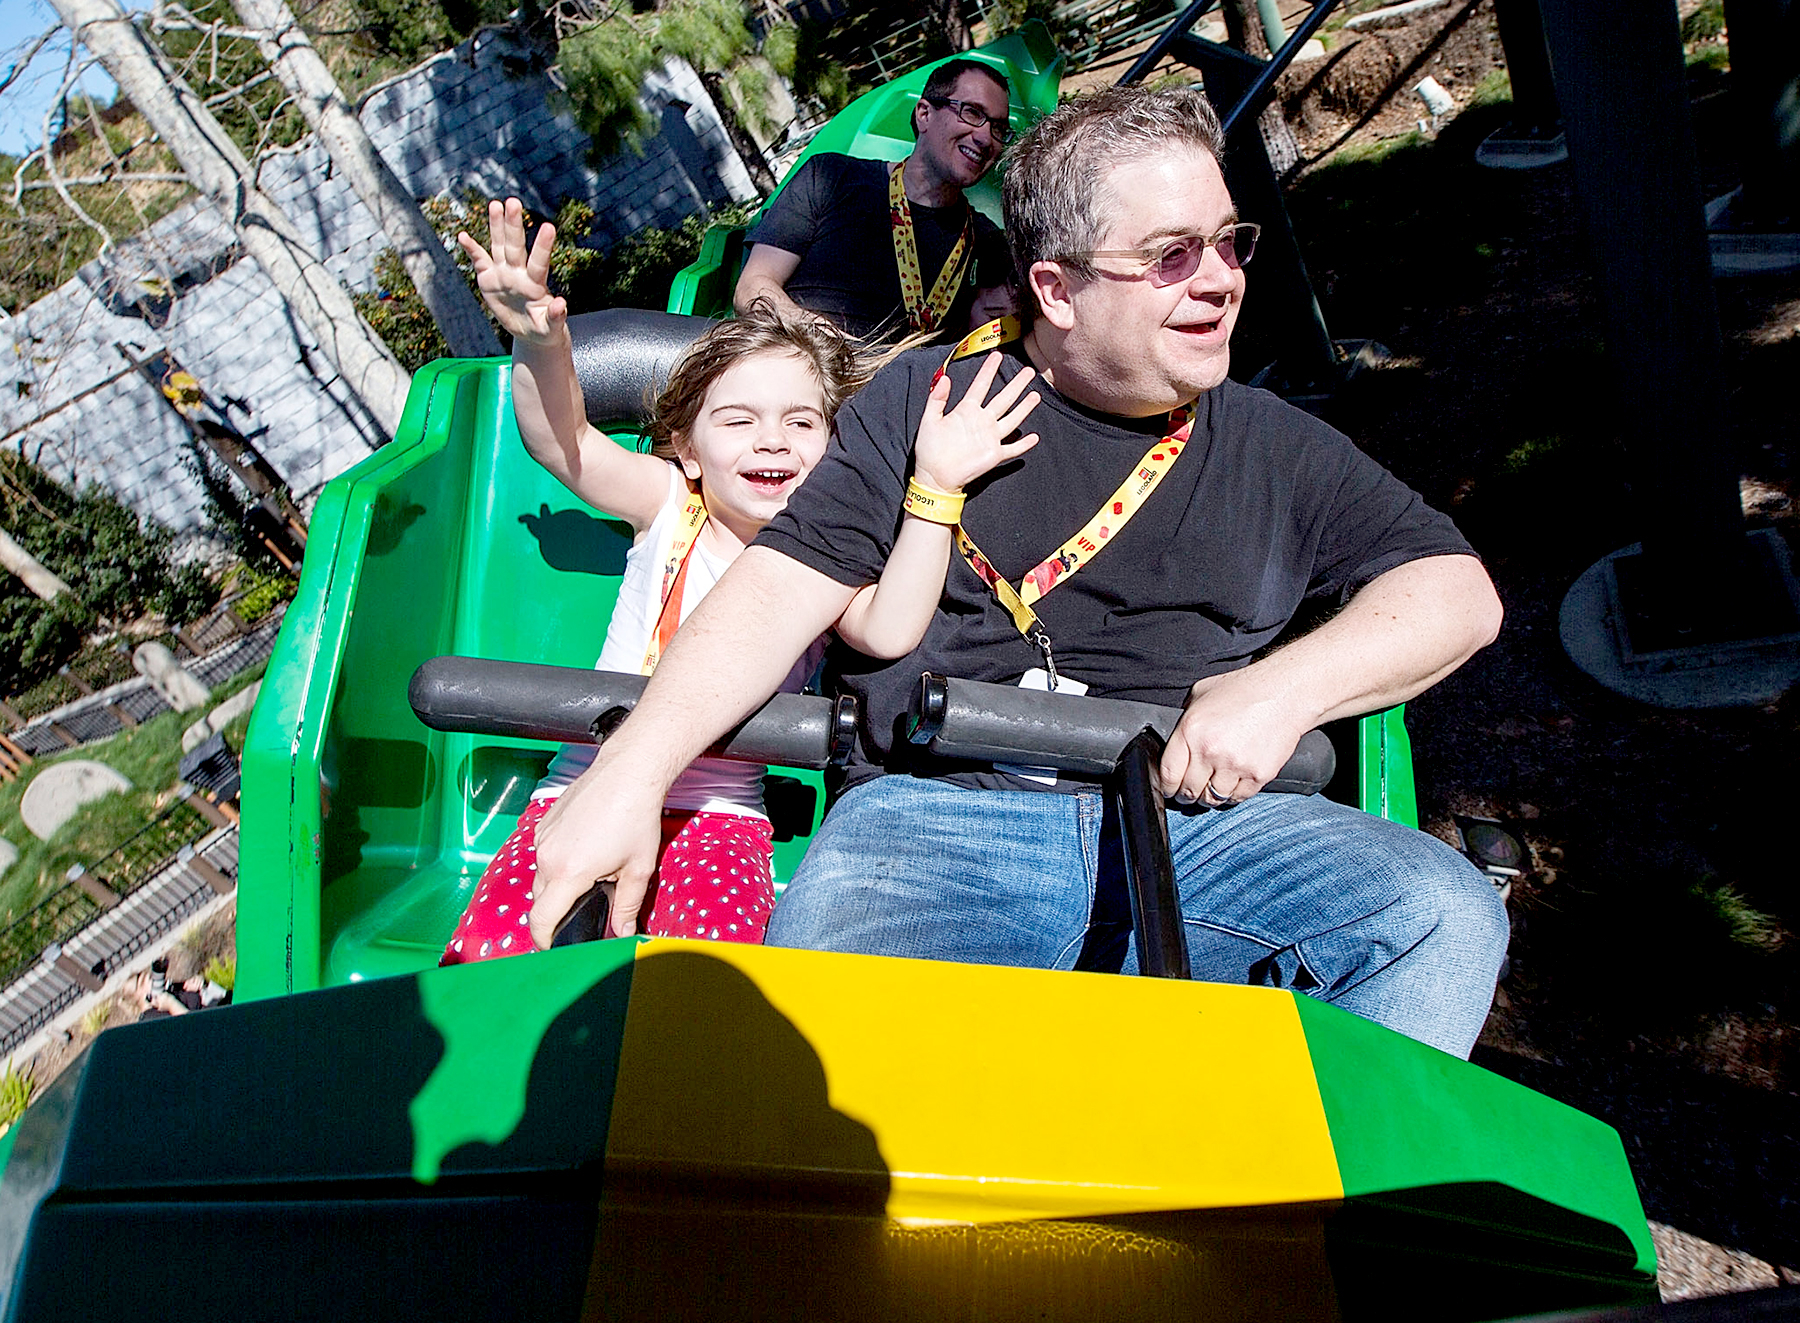 Patton Oswalt and his daughter Alice Oswalt ride The Dragon roller coaster at LEGOLAND on February 6, 2016 in Carlsbad, California.